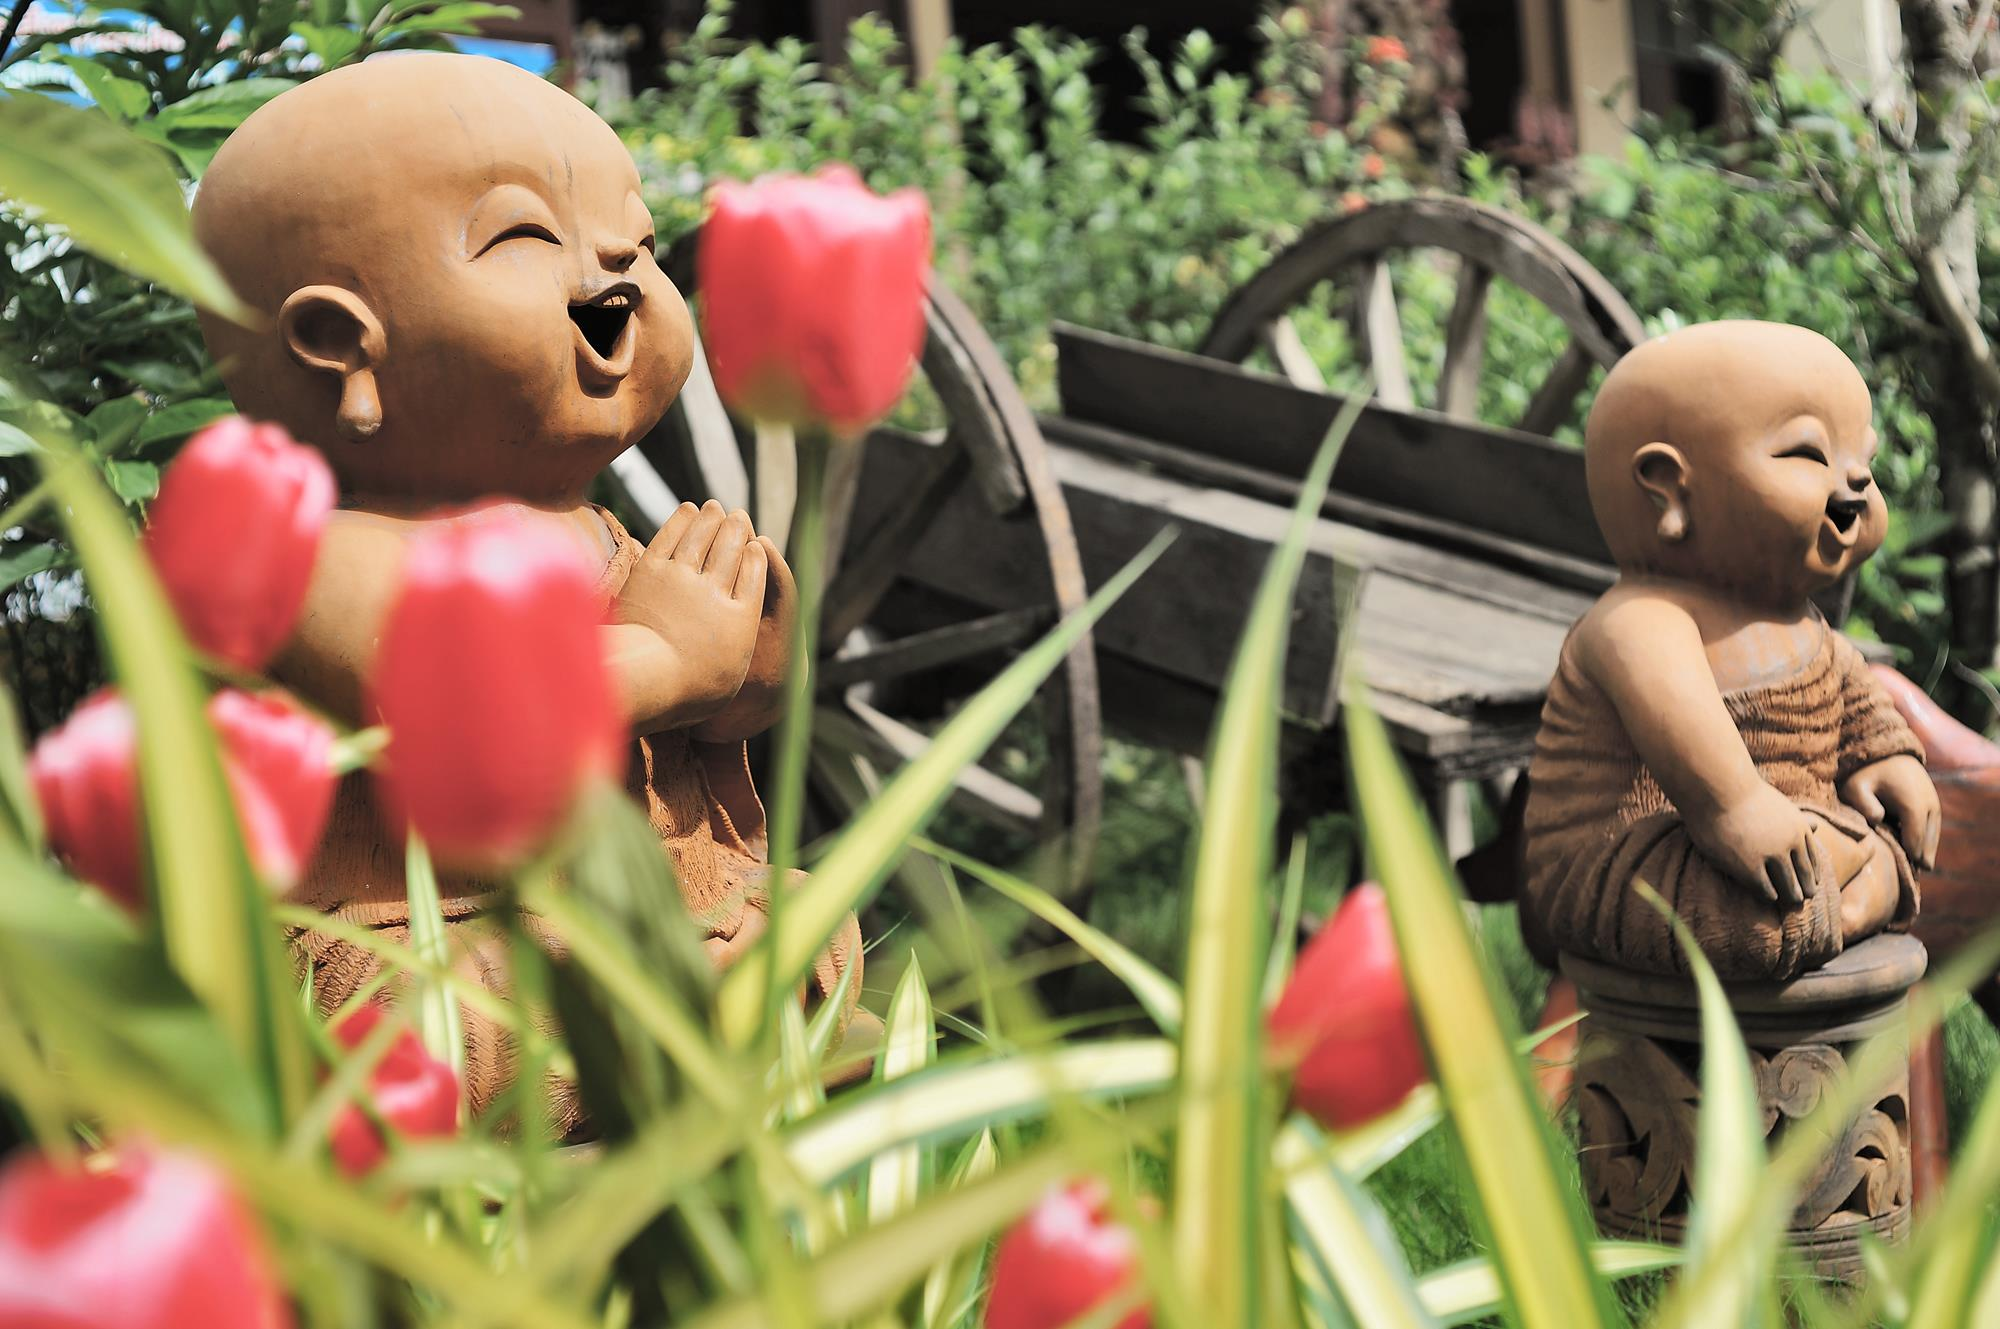 buddhist statues in flower garden